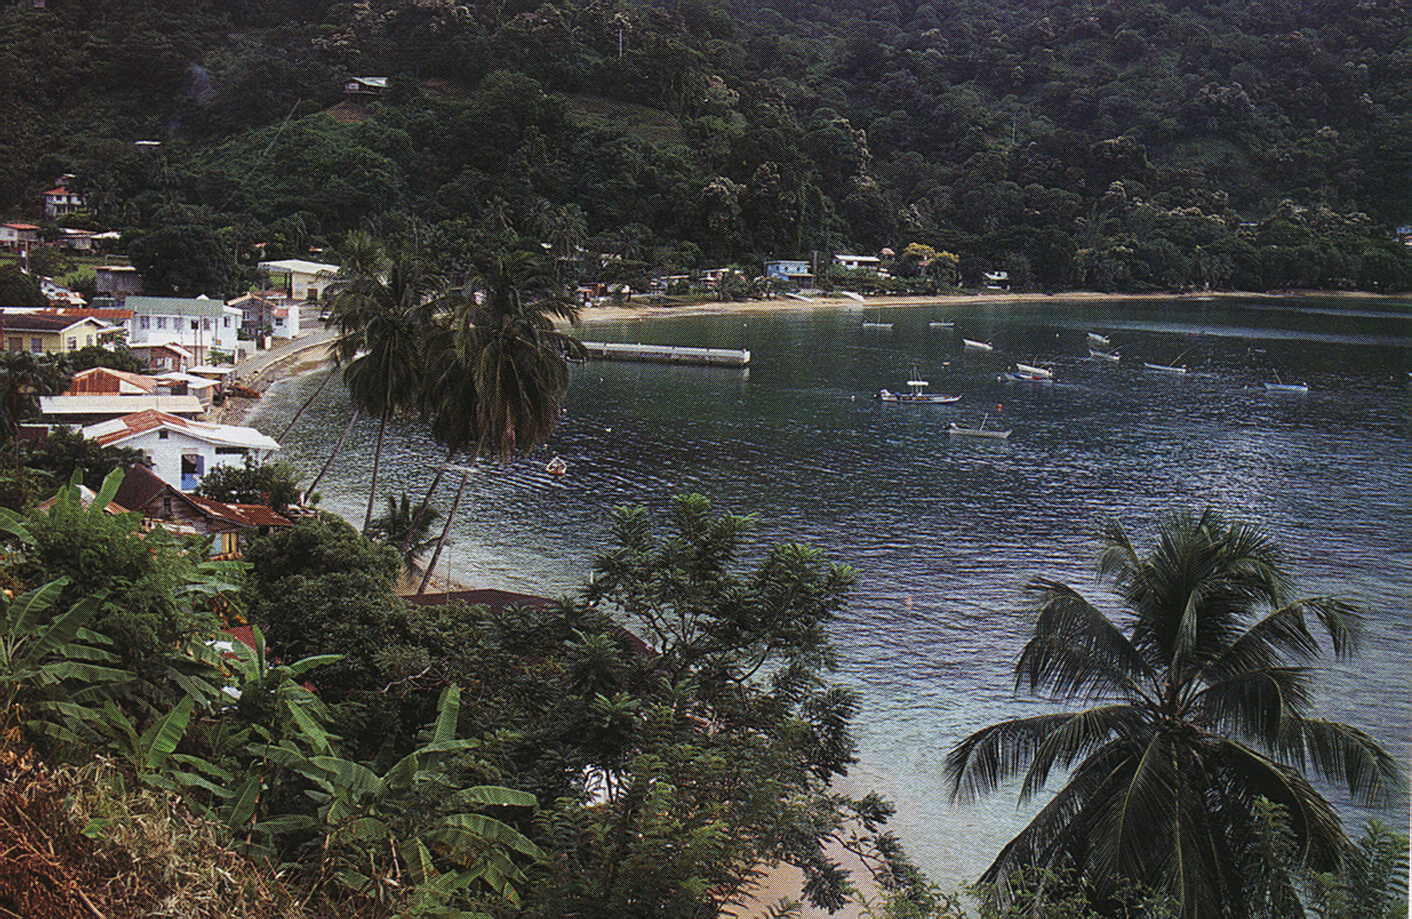 Charlotteville, the fishing village on Tobago's northern tip. Photograph by Allan Weisbecker